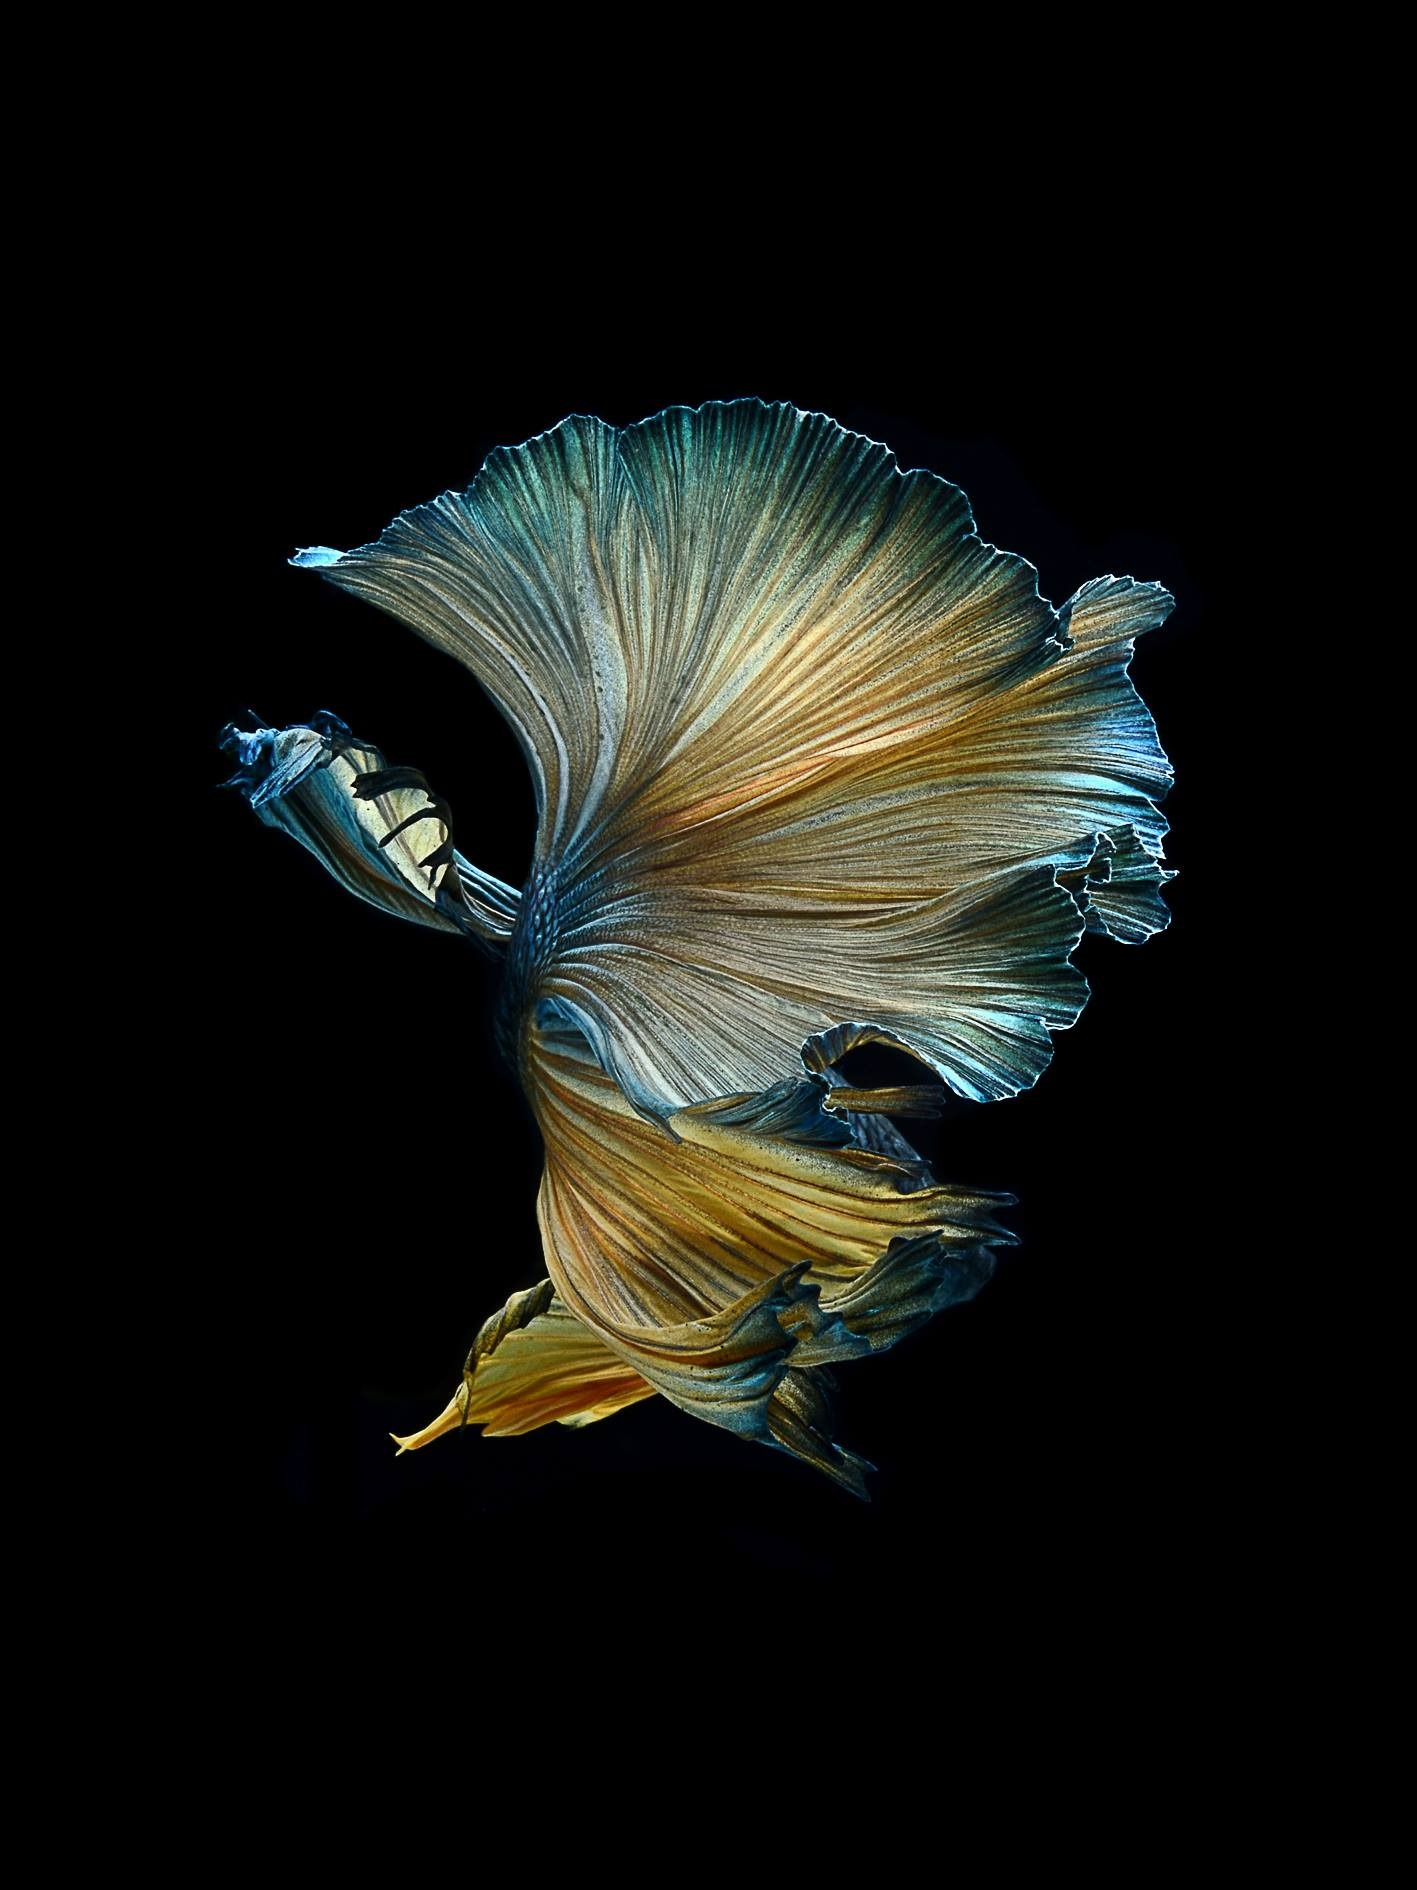 Iphone X Off White Wallpaper Strange And Funky Animal Photographer Visarute